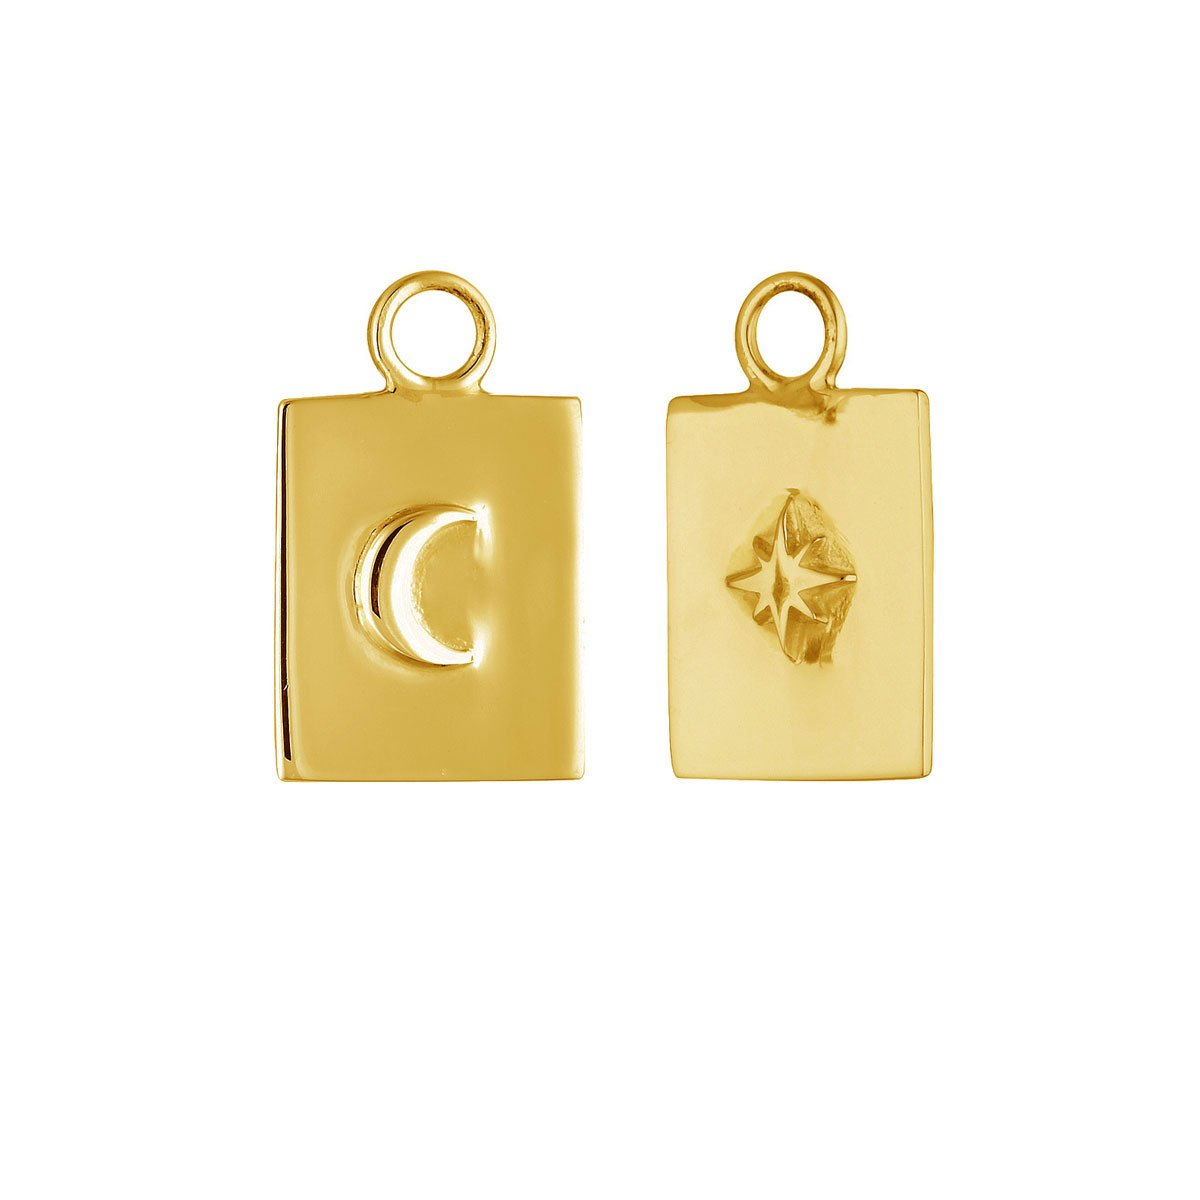 Celestial Medallion Ear Charms